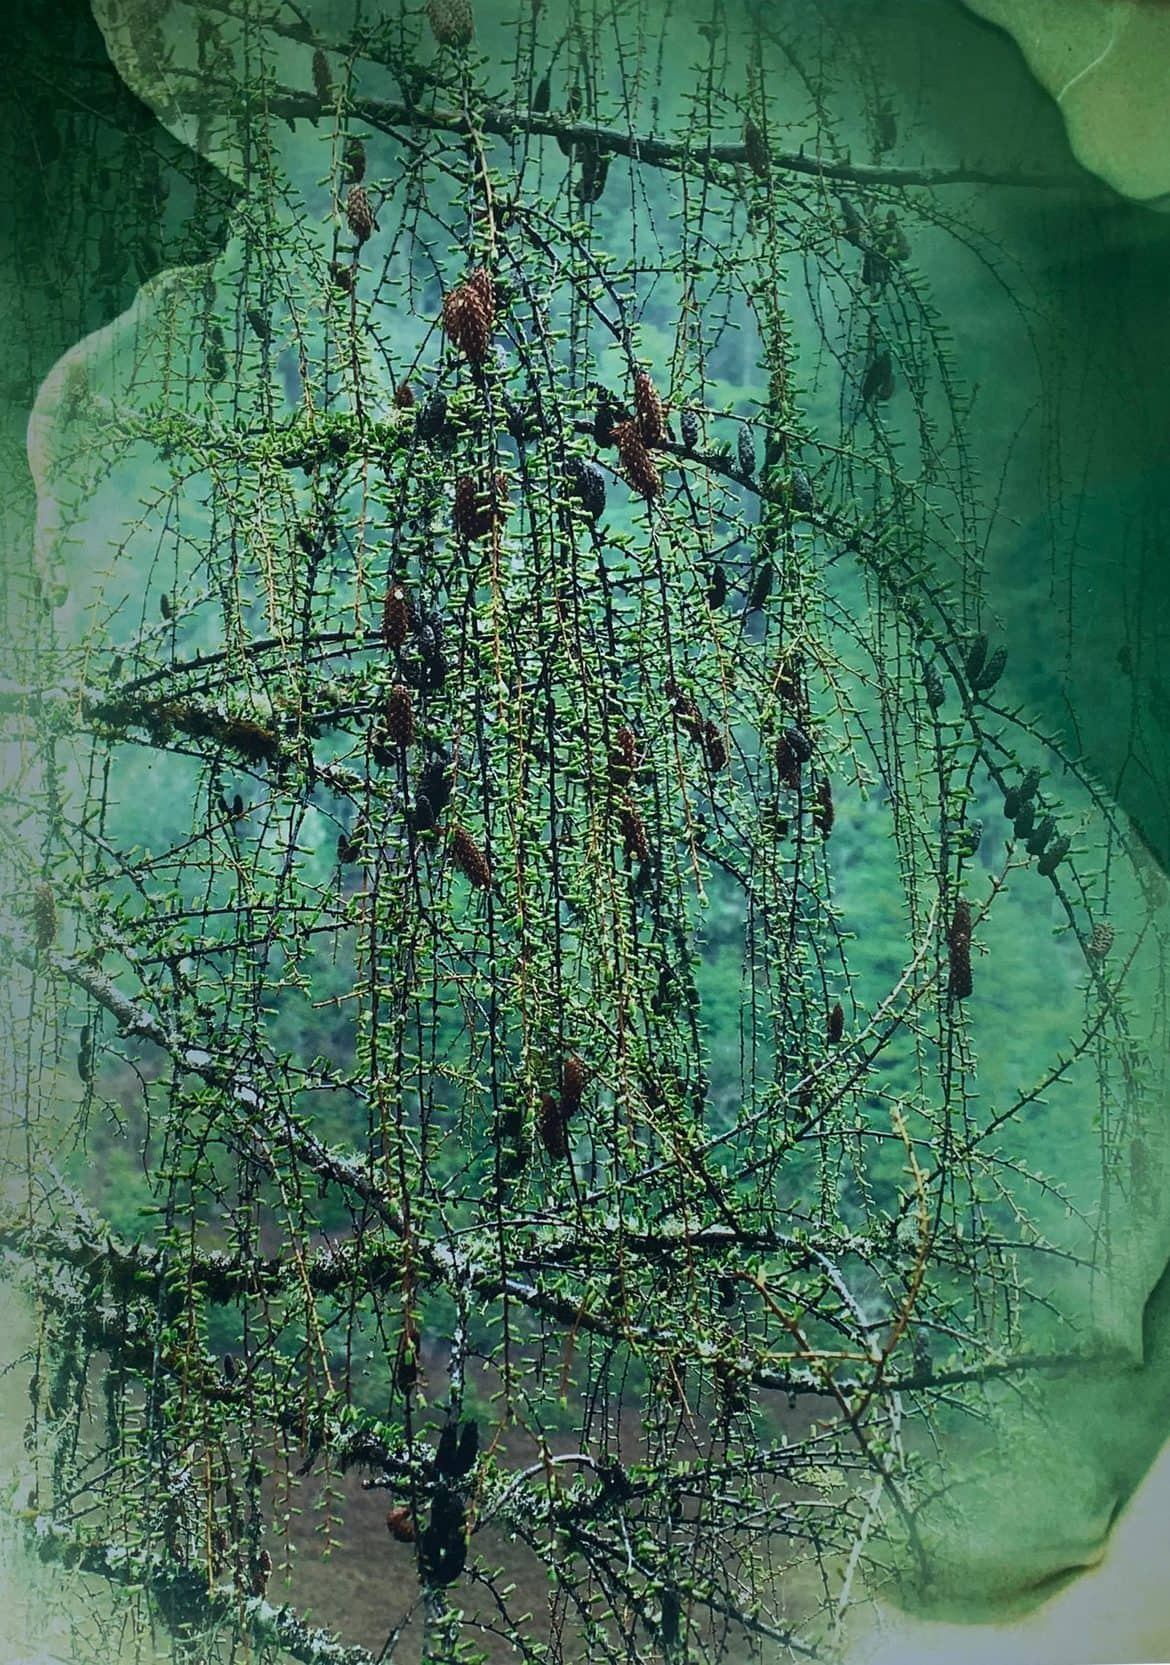 Janet Laurence, 'Entangled Garden for Plant Memory 1', 2020, dye sublimation archival print onto polished mirror, 120 x 80 cm, edition of 3 + 1AP